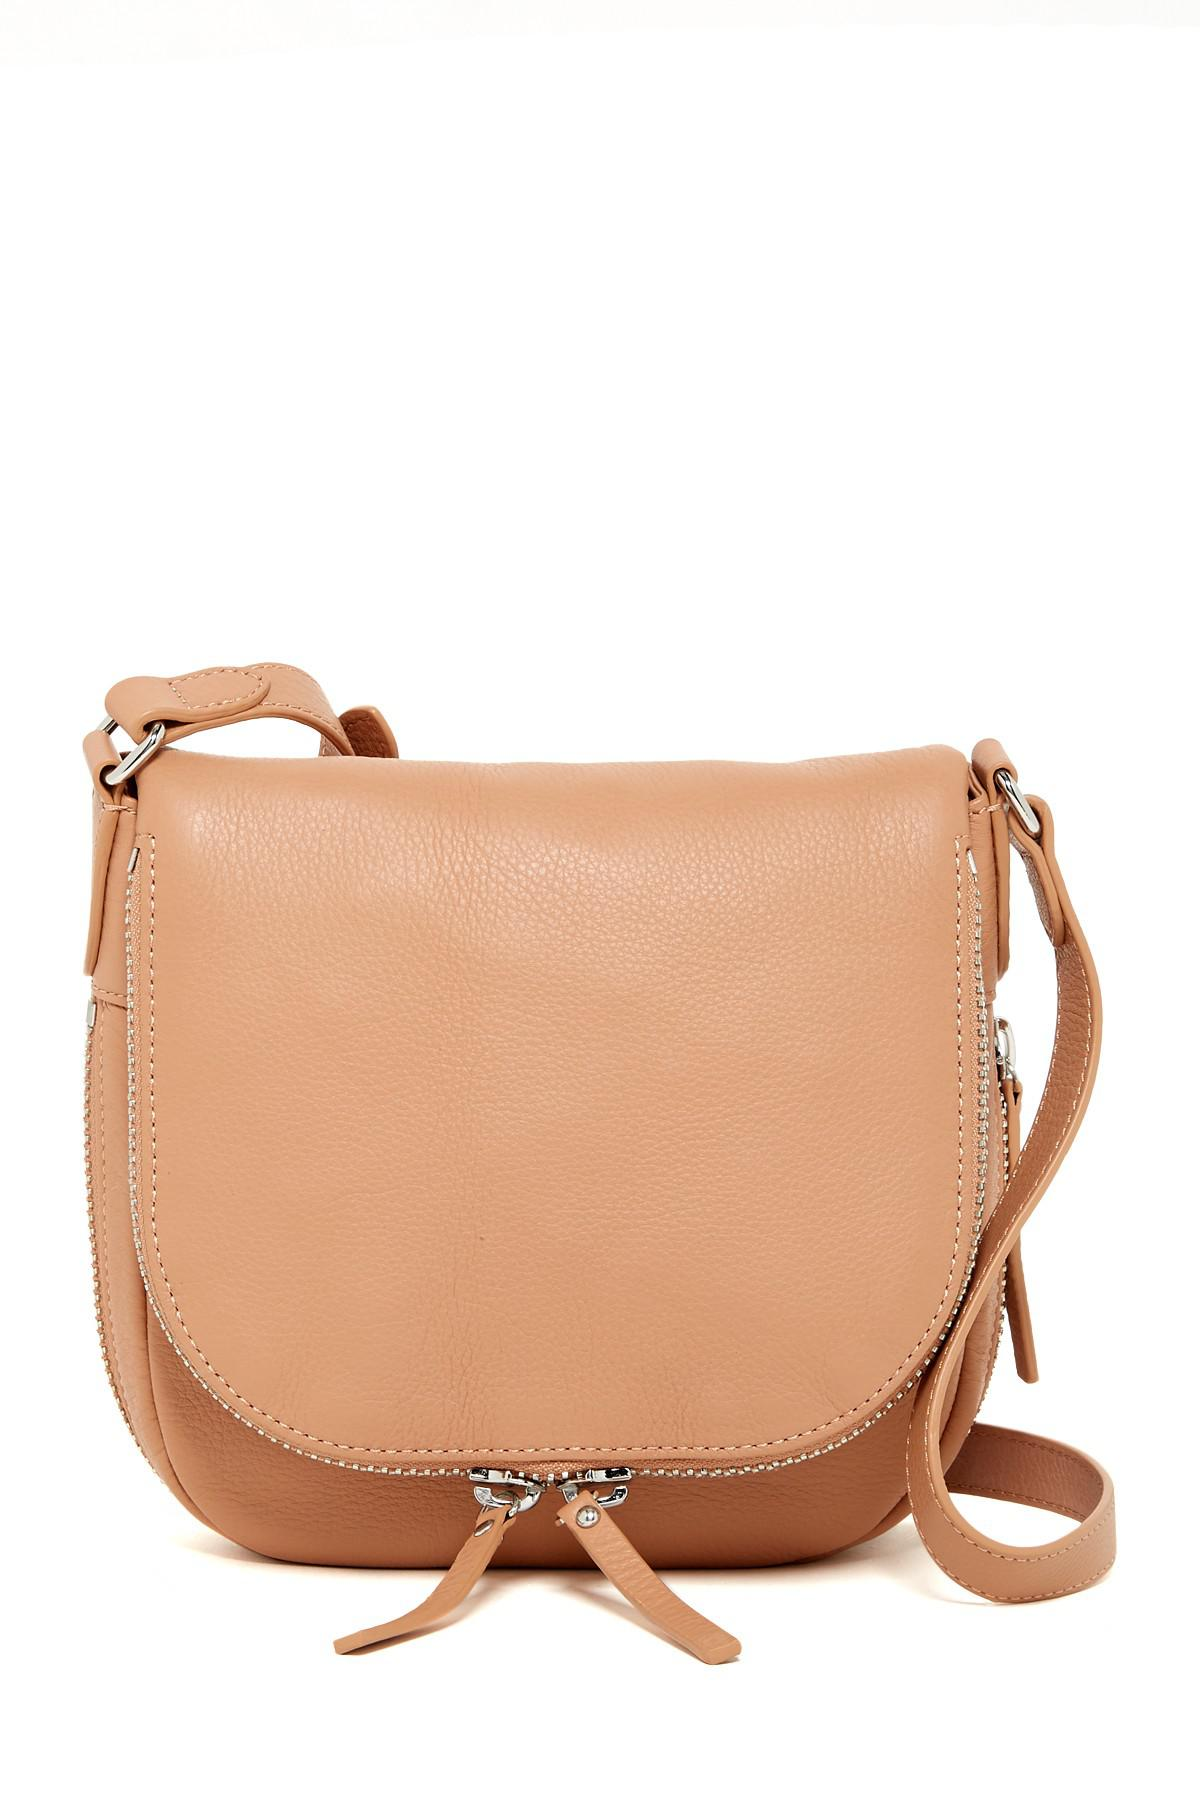 72766a7453 Lyst - Vince Camuto Baily Leather Crossbody